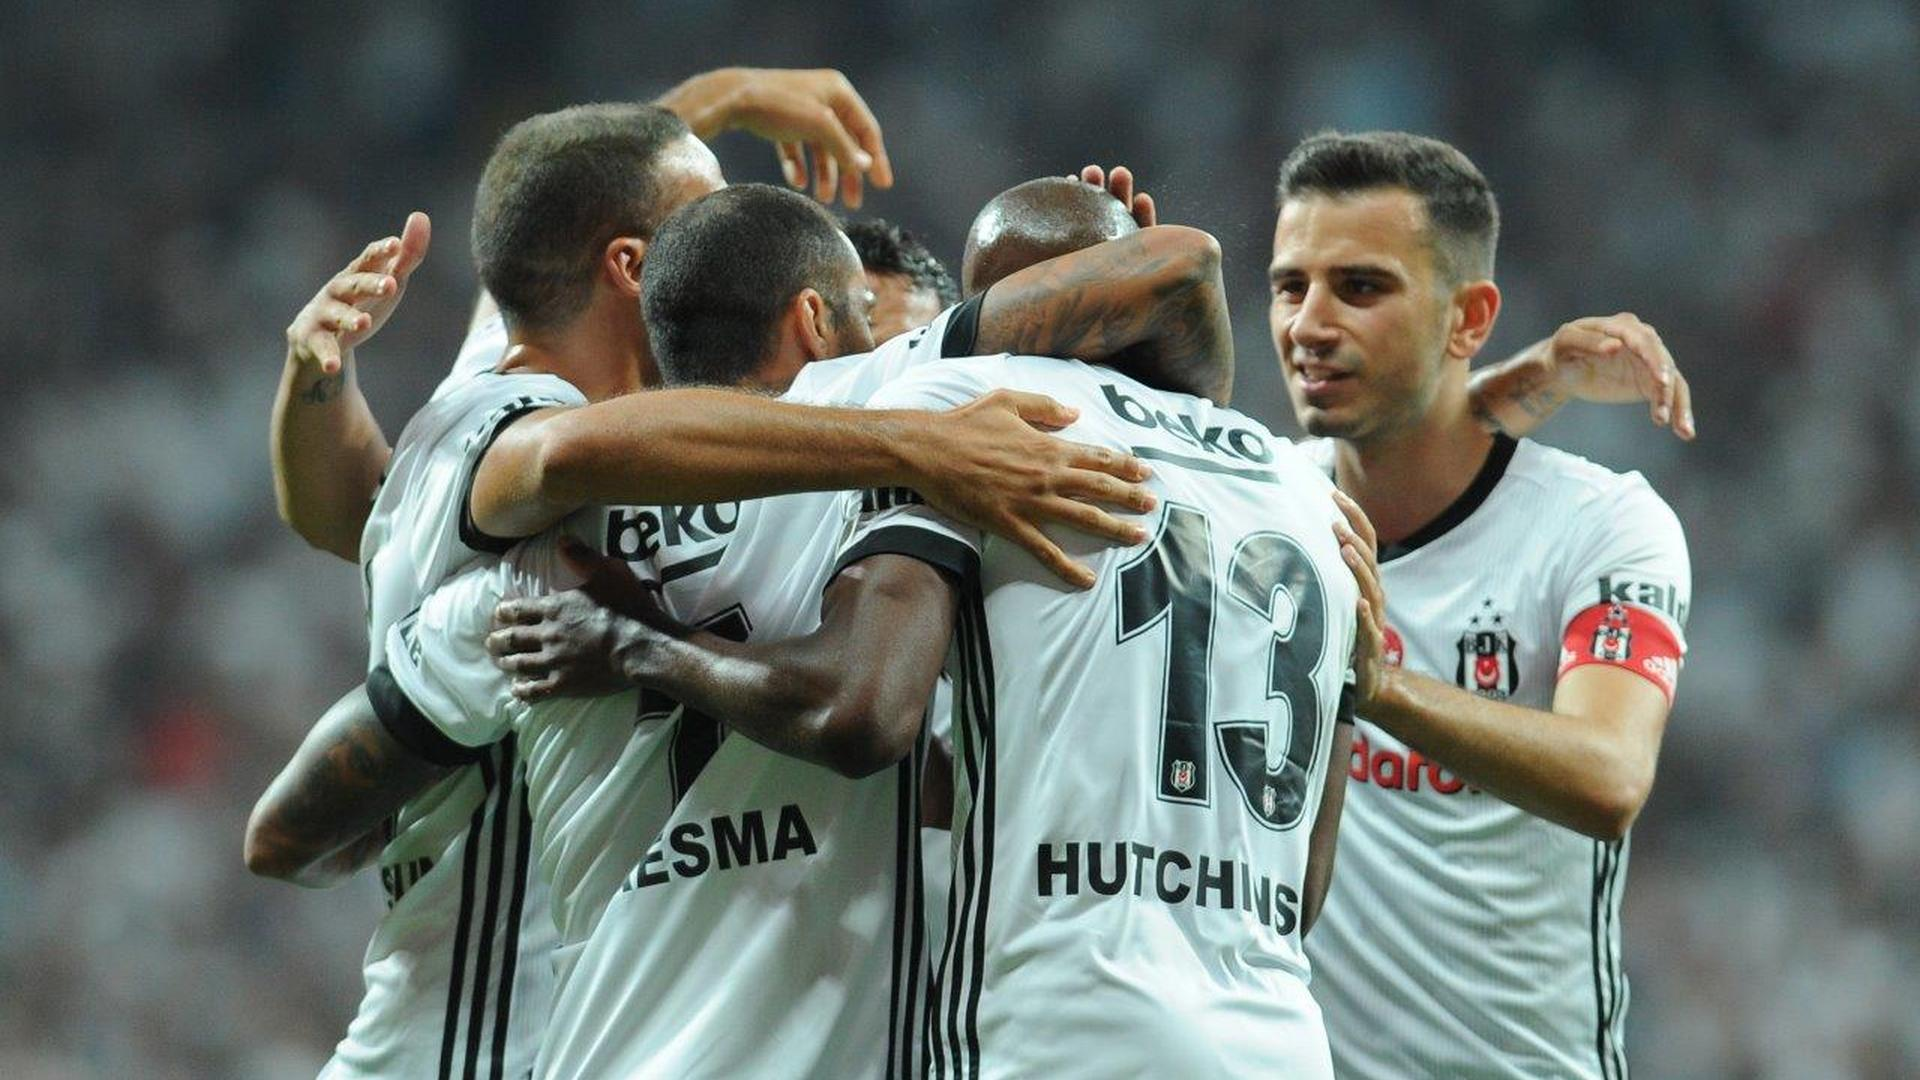 Besiktas goal celebration 2682017